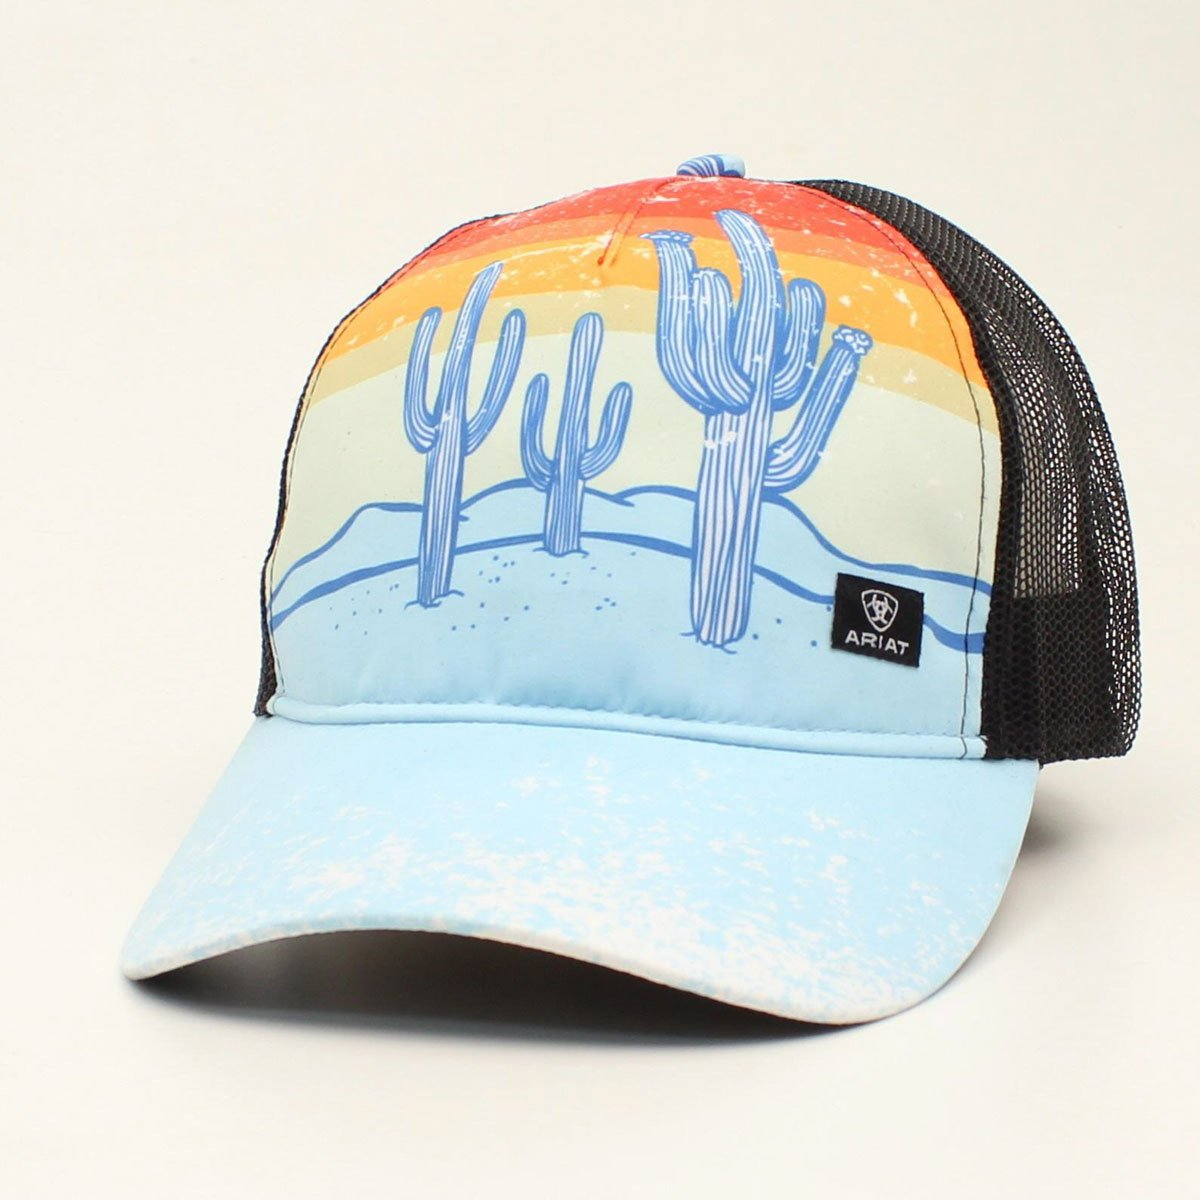 Cactus Desert Ball Cap from Ariat